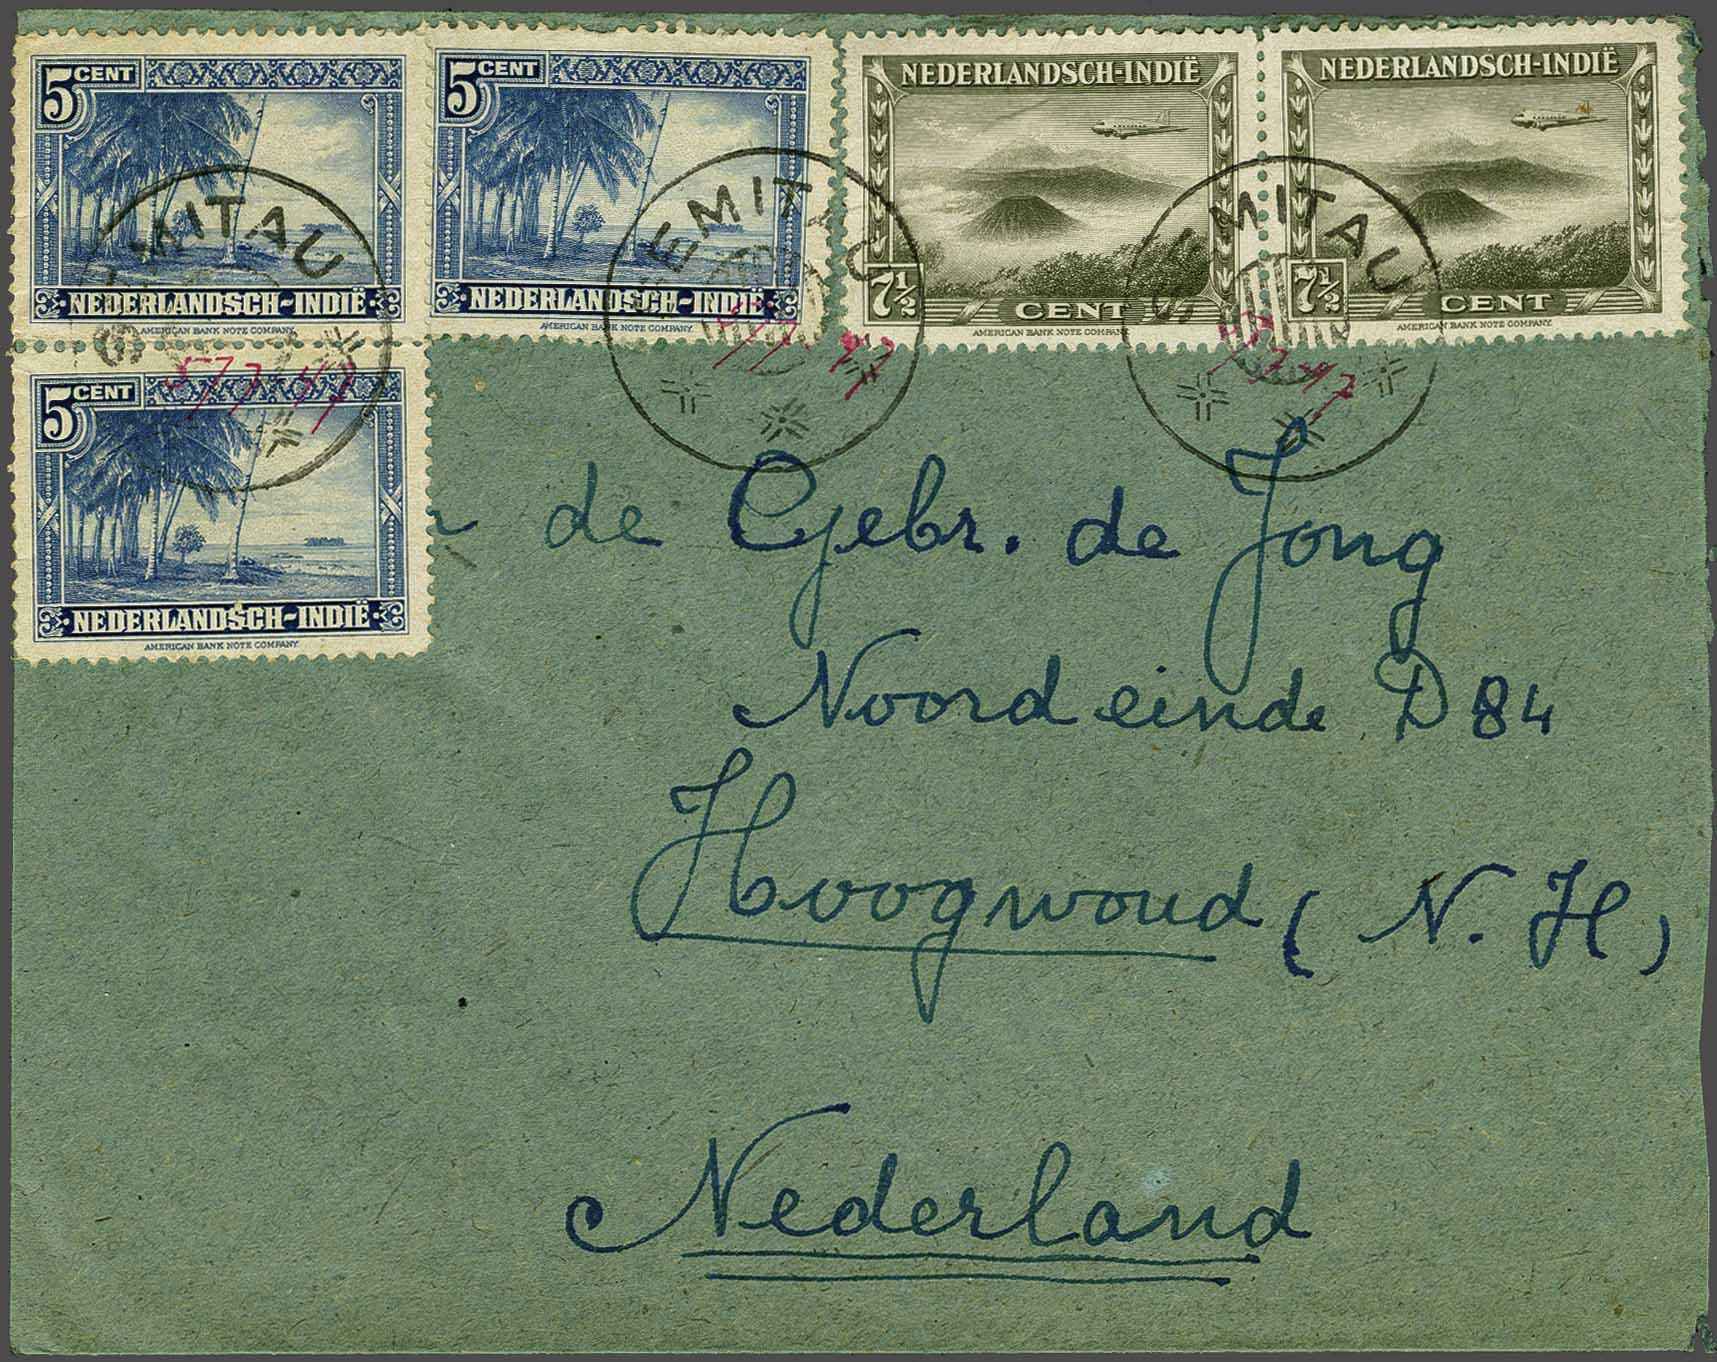 Lot 2075 - Netherlands and former colonies Netherlands Indies -  Corinphila Veilingen Auction 245-246 Day 3 - Netherlands and former colonies - Single lots, Collections and lots, Boxes and literature